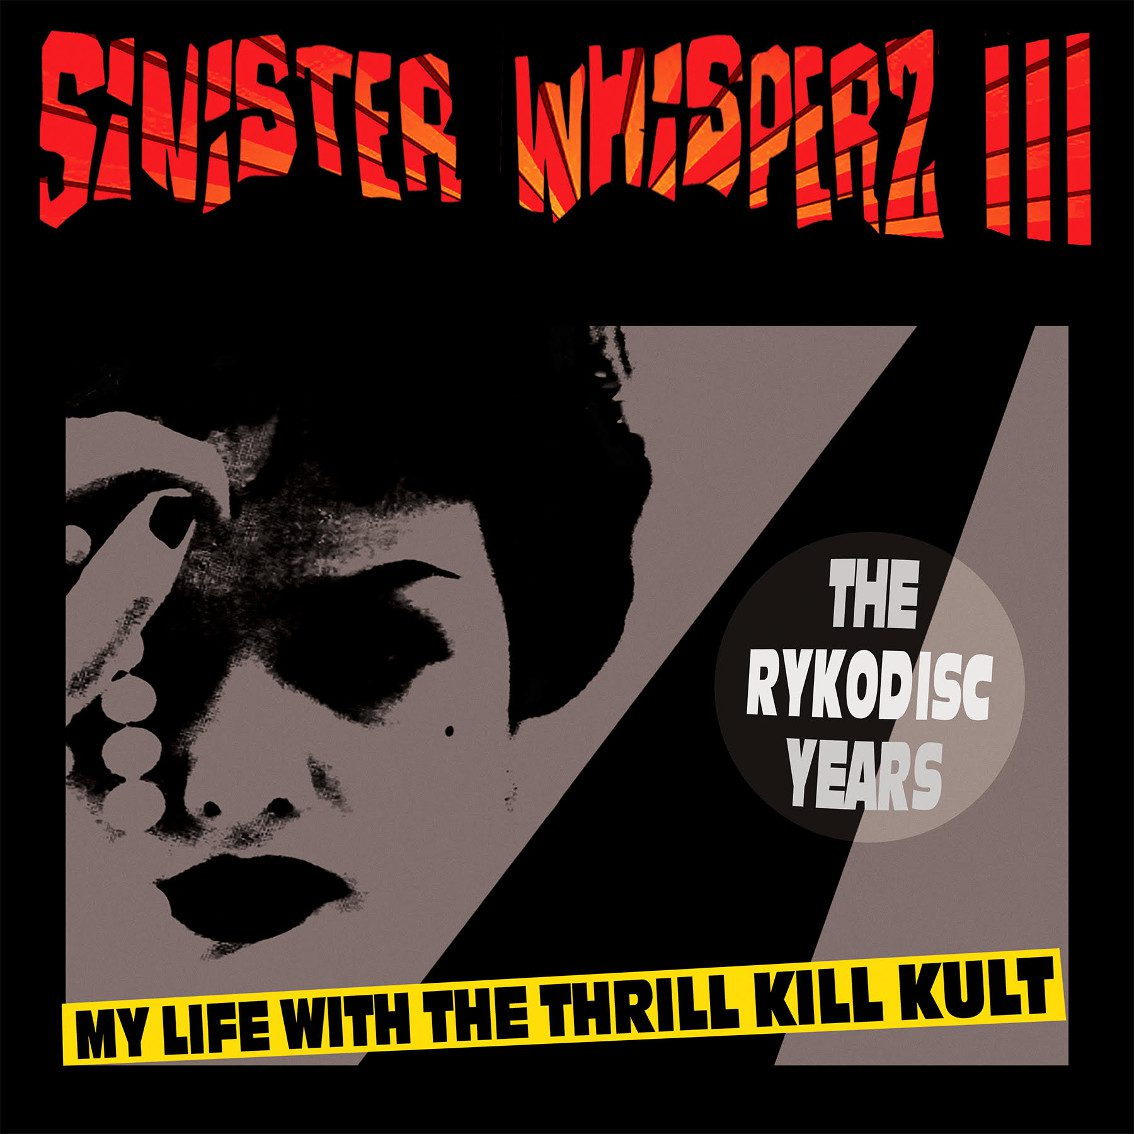 My Life With The Thrill Kill Kult to release 3rd installment in retrospective Sinister Whisperz series: 'The Rykodisc Years'